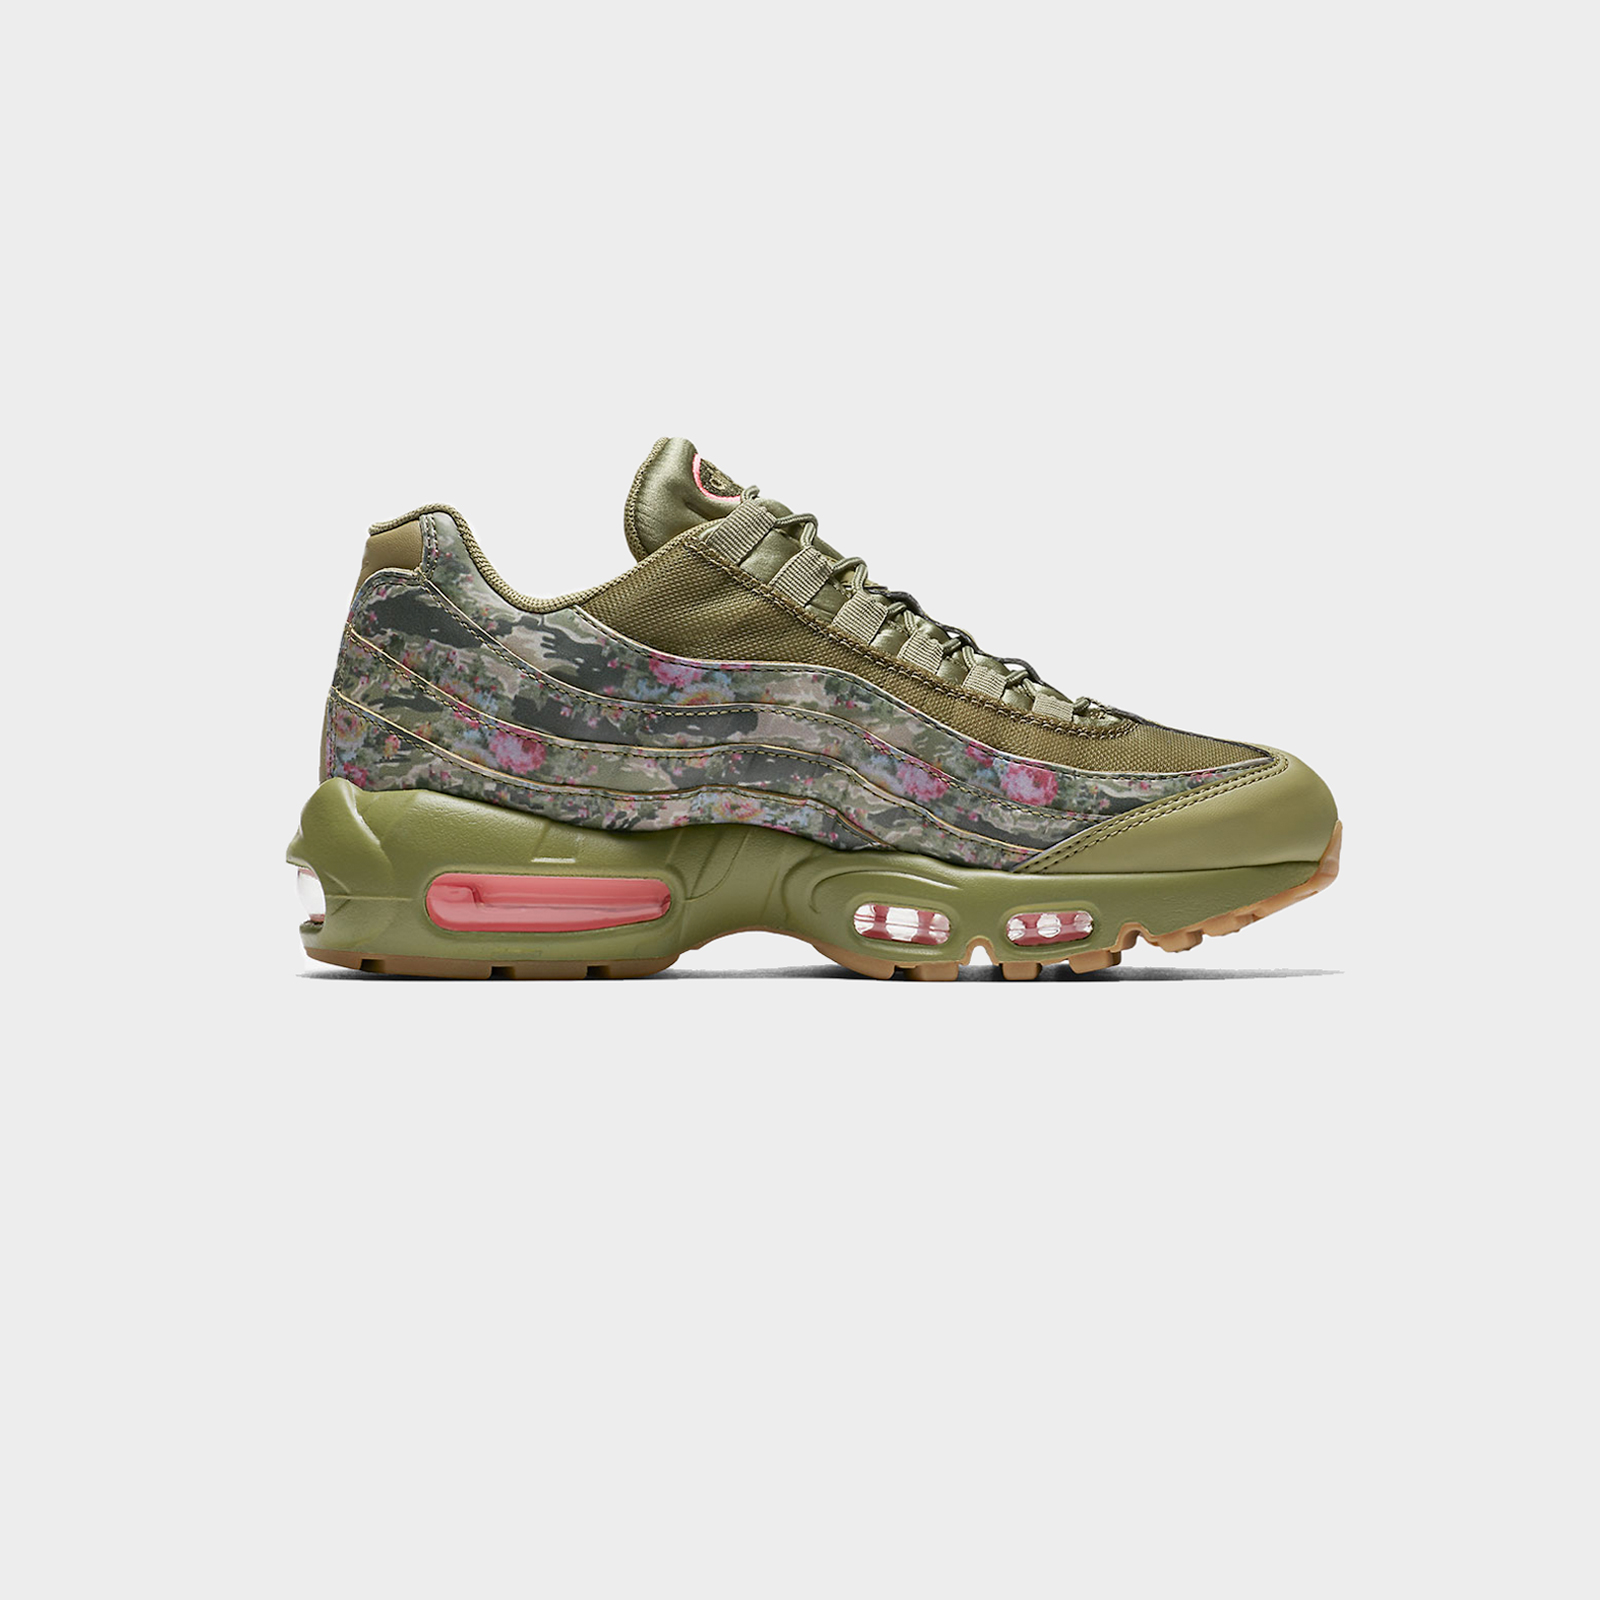 Air Camo Aq6385 95 Nike Sneakers Sneakersnstuff Max Et 200 wTO6a